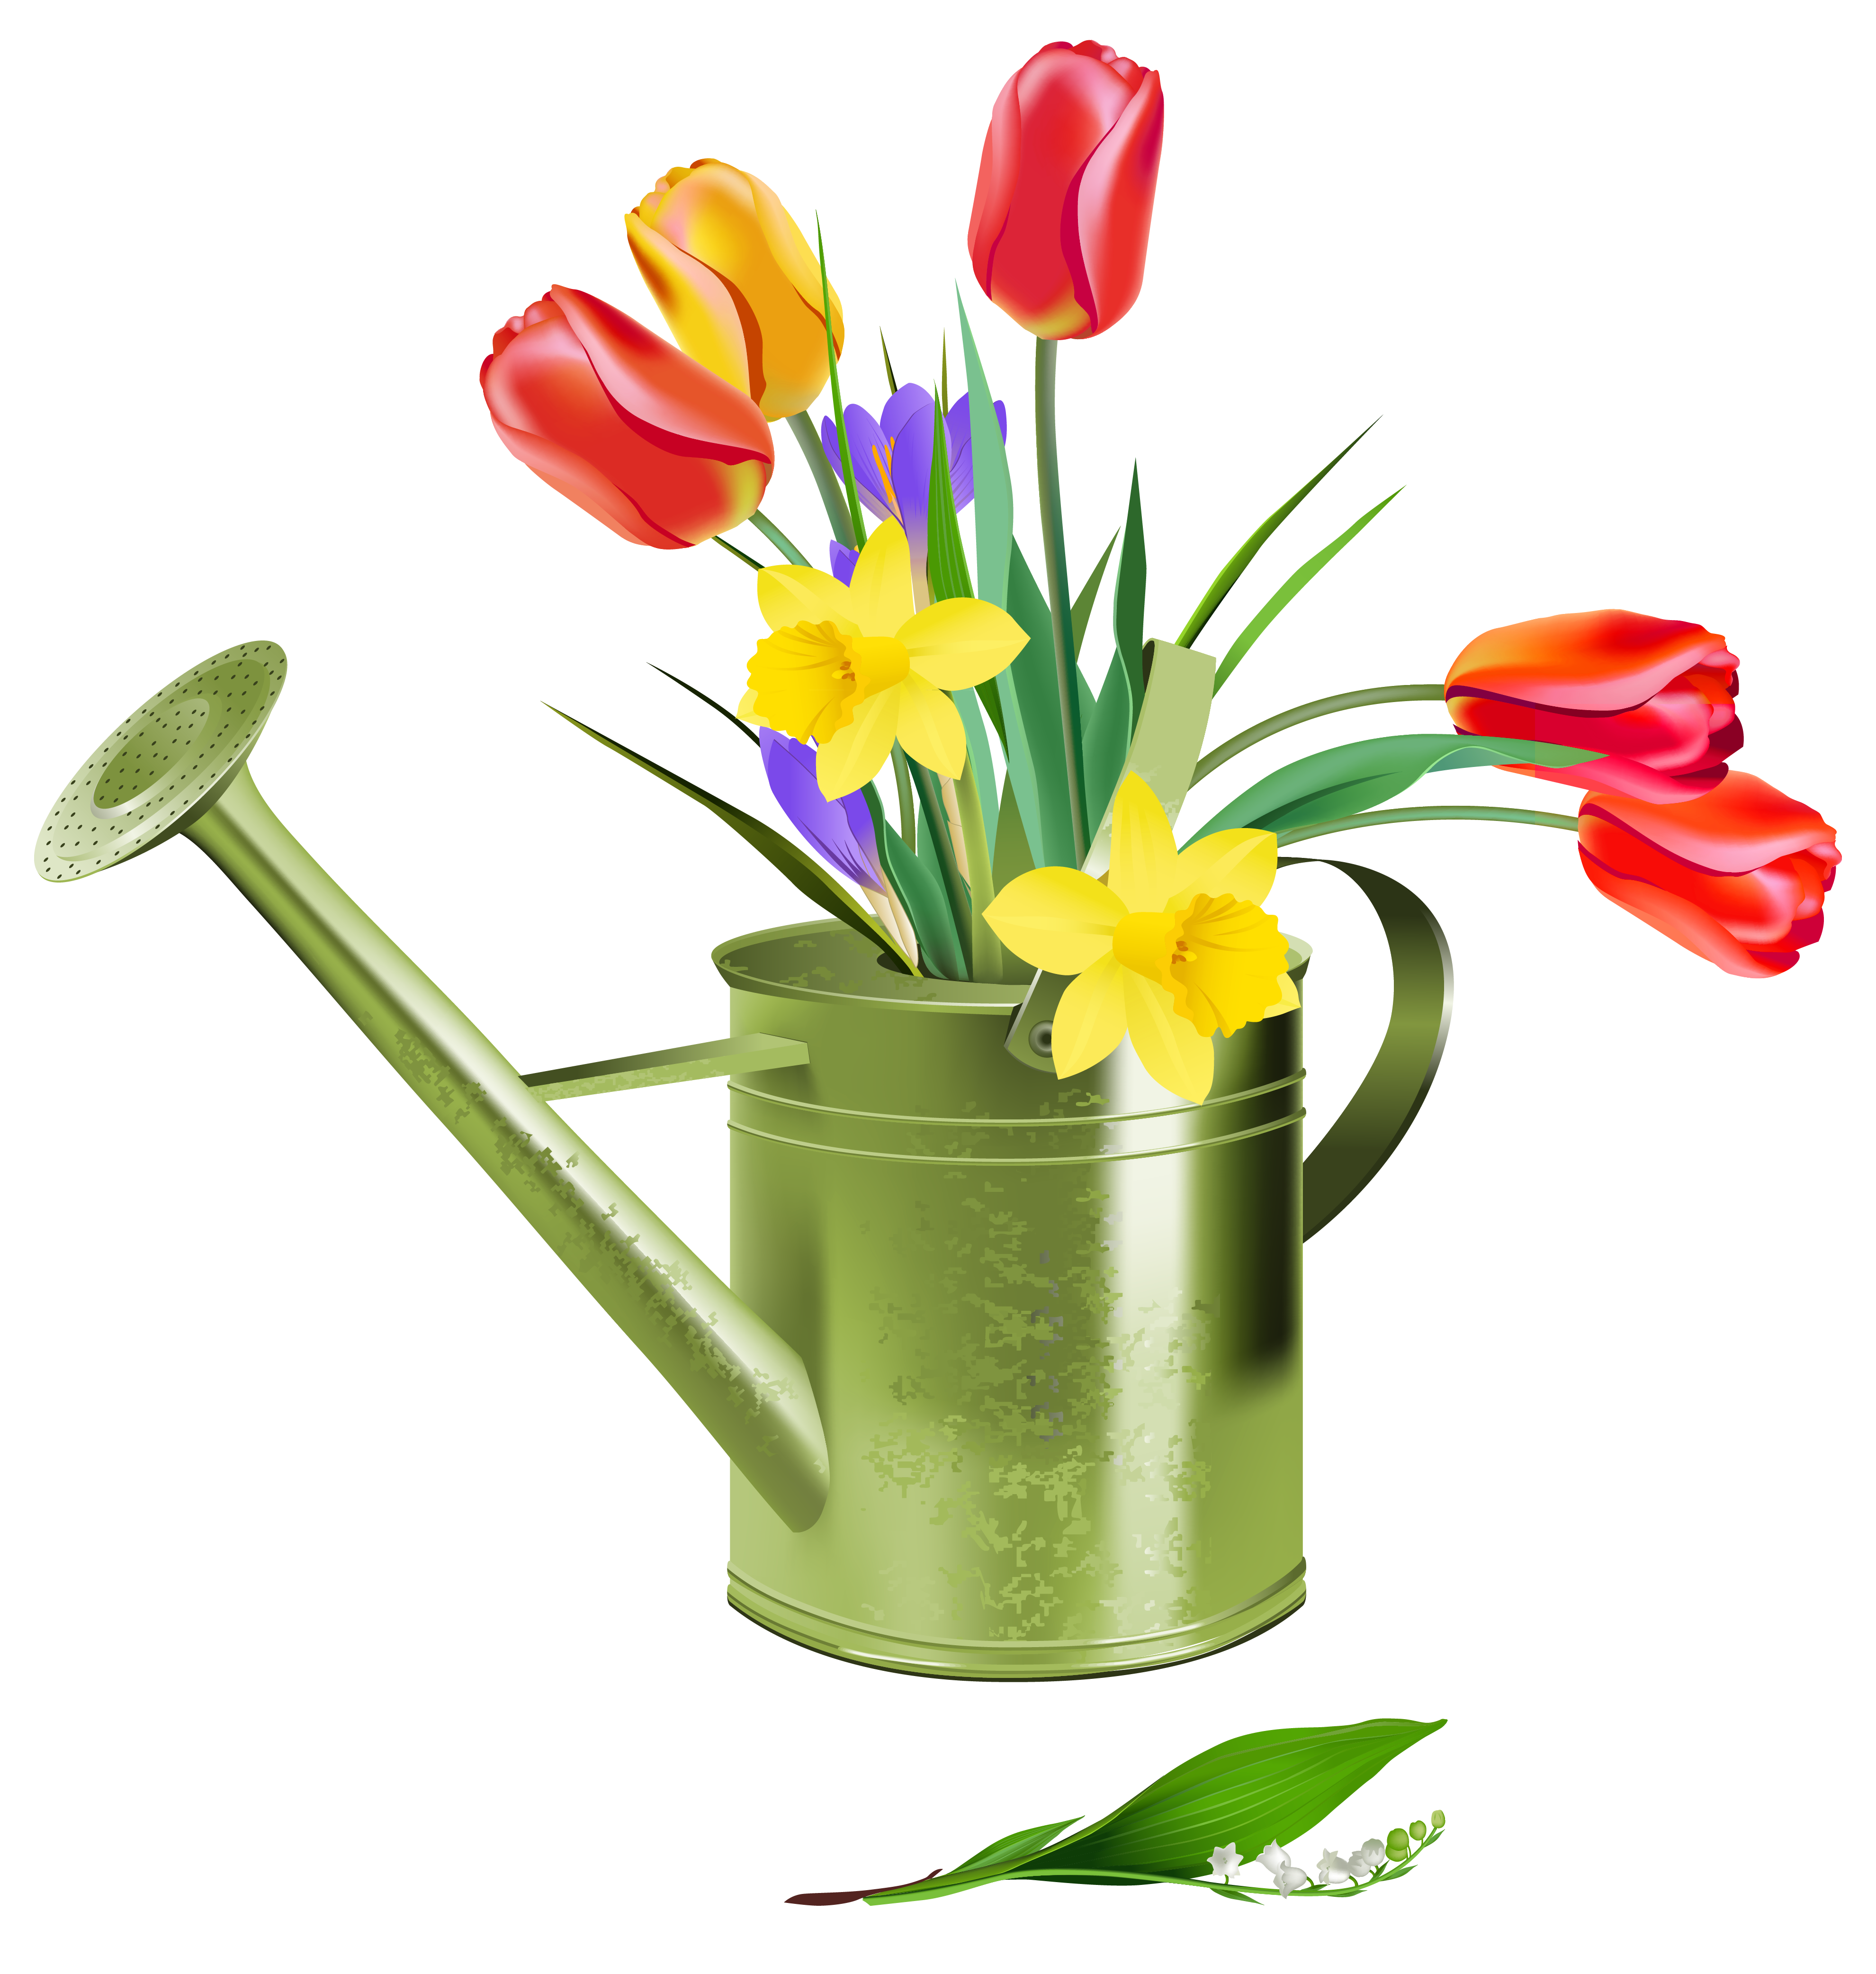 Vase clipart summer flower. Pictures of spring flowers